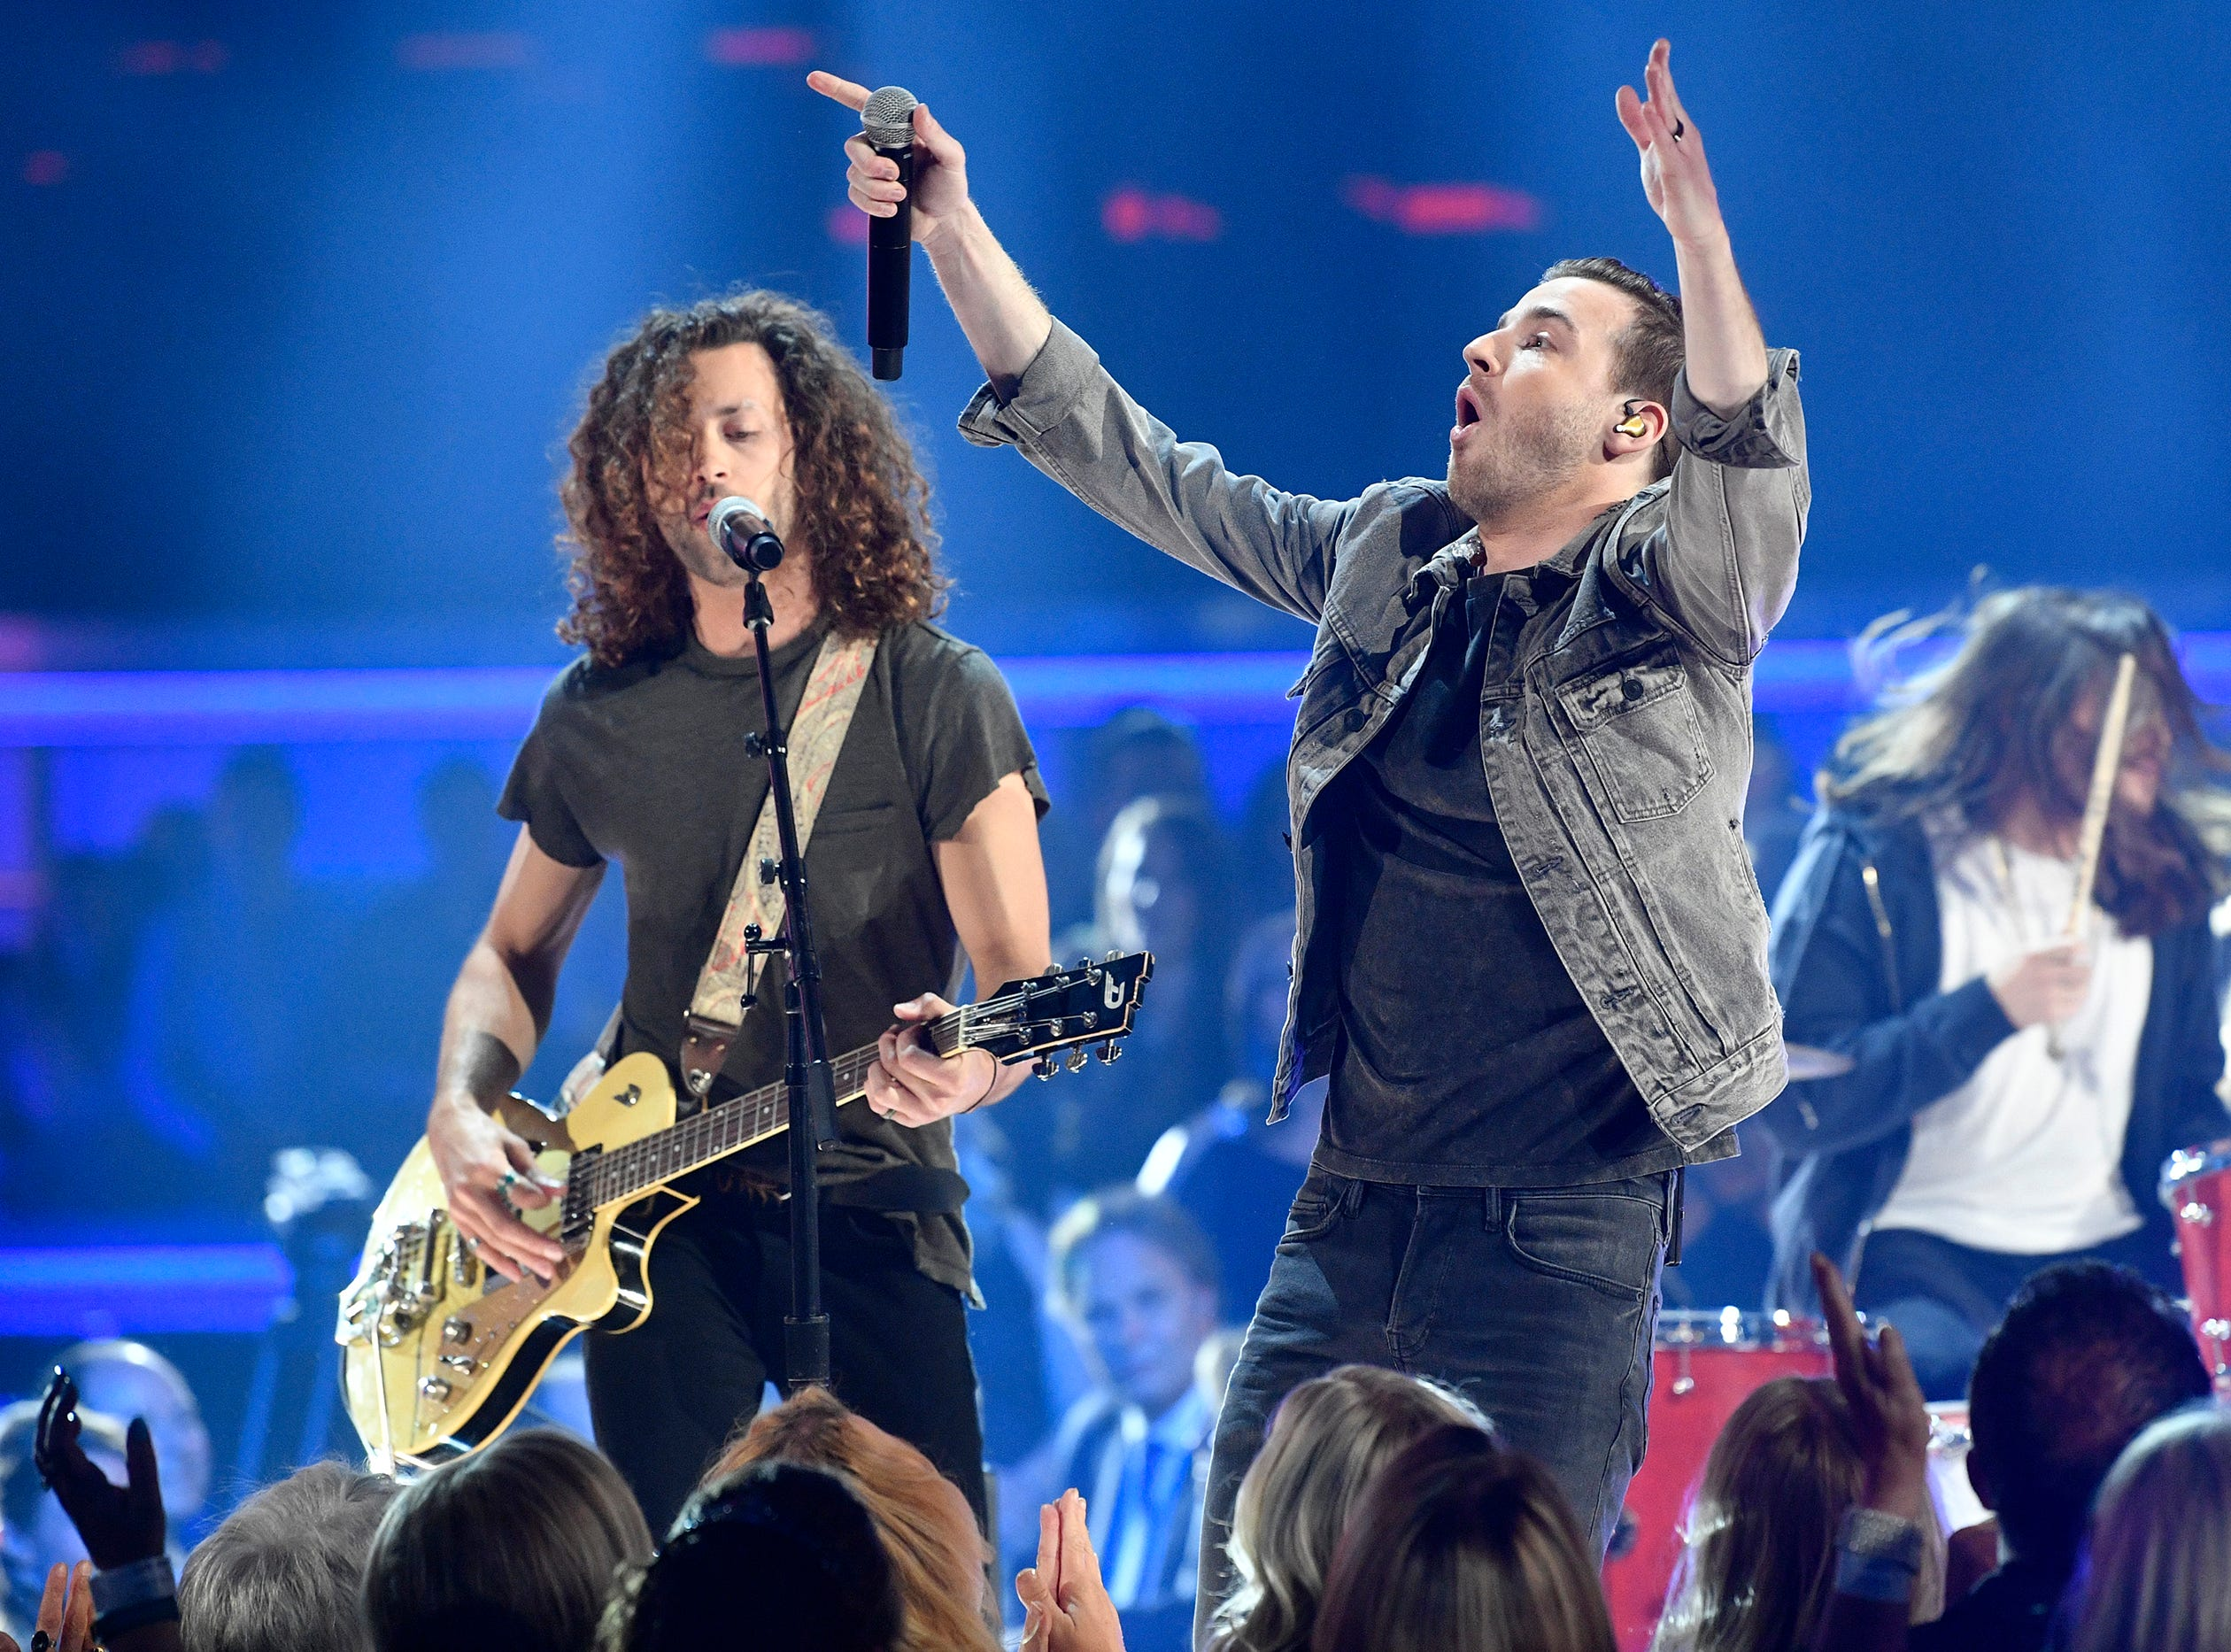 Eric Steedly, left, and Brandon Lancaster, of music group Lanco, perform during the 54TH Academy of Country Music Awards Sunday, April 7, 2019, in Las Vegas, Nev.